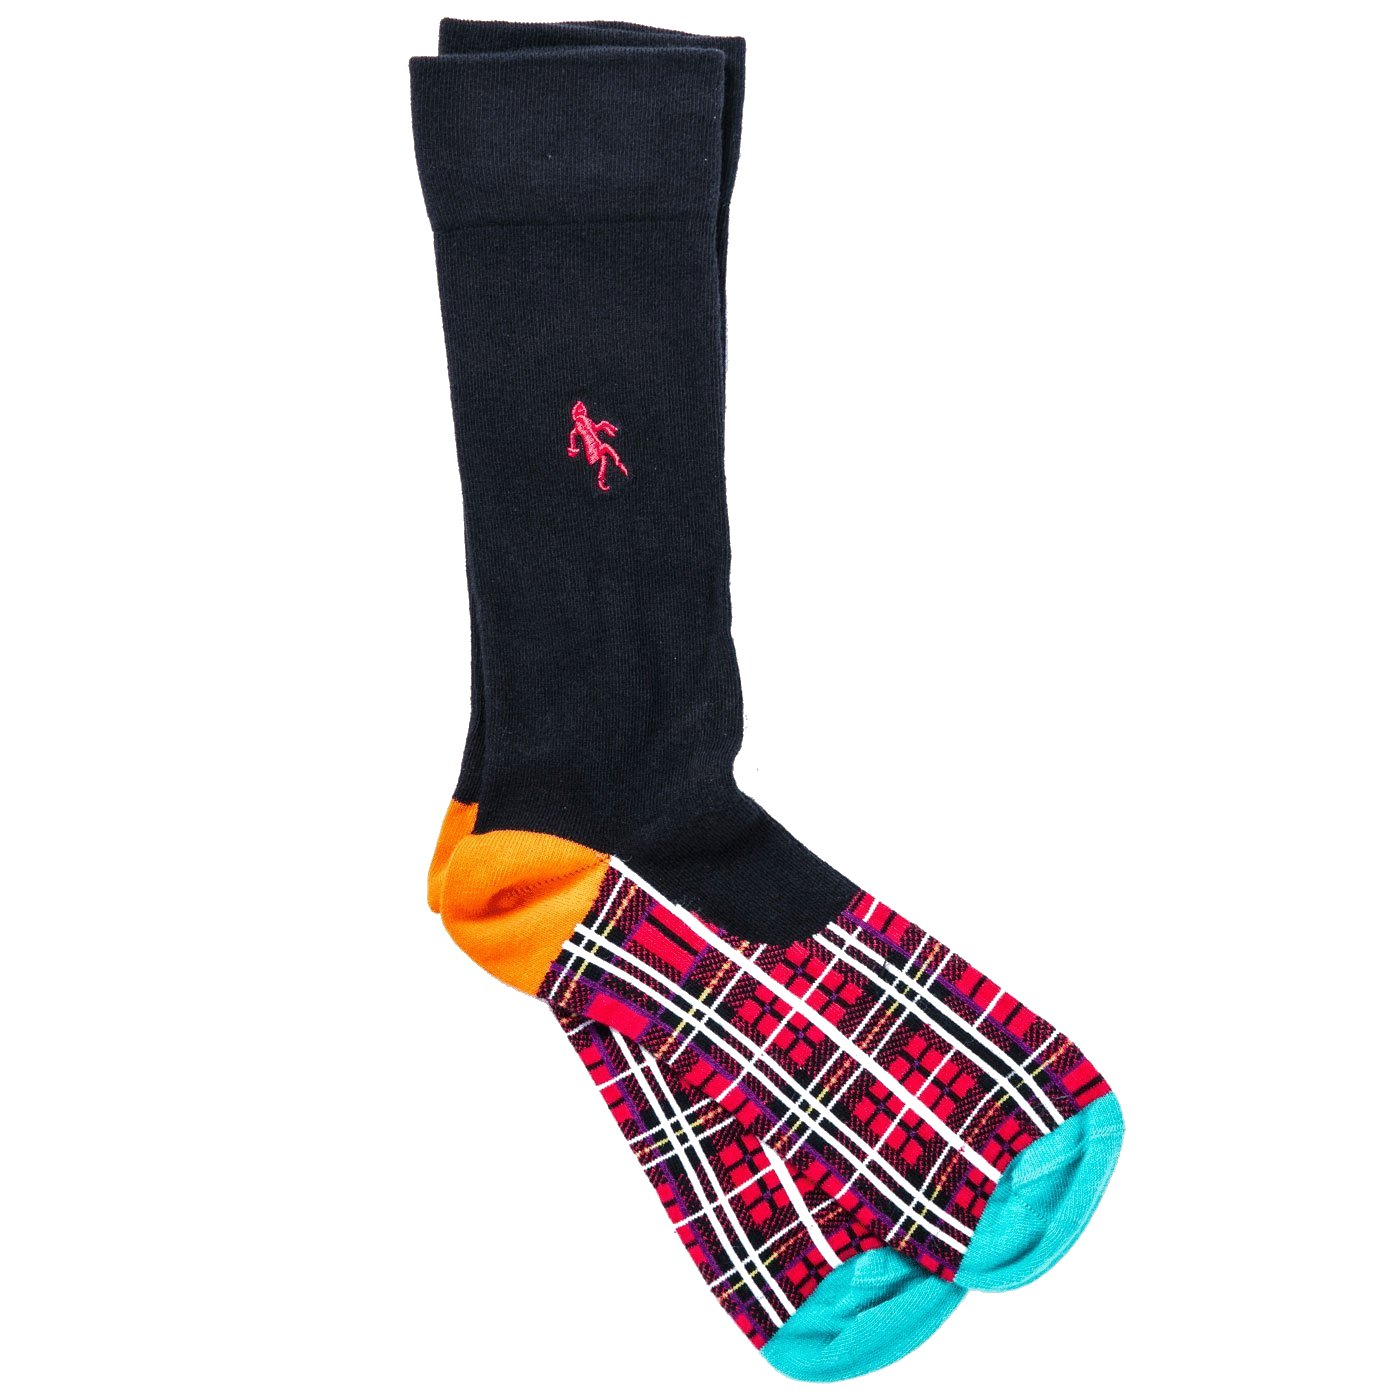 Fun Hidden Pattern Socks for Men - Elsie Ingles